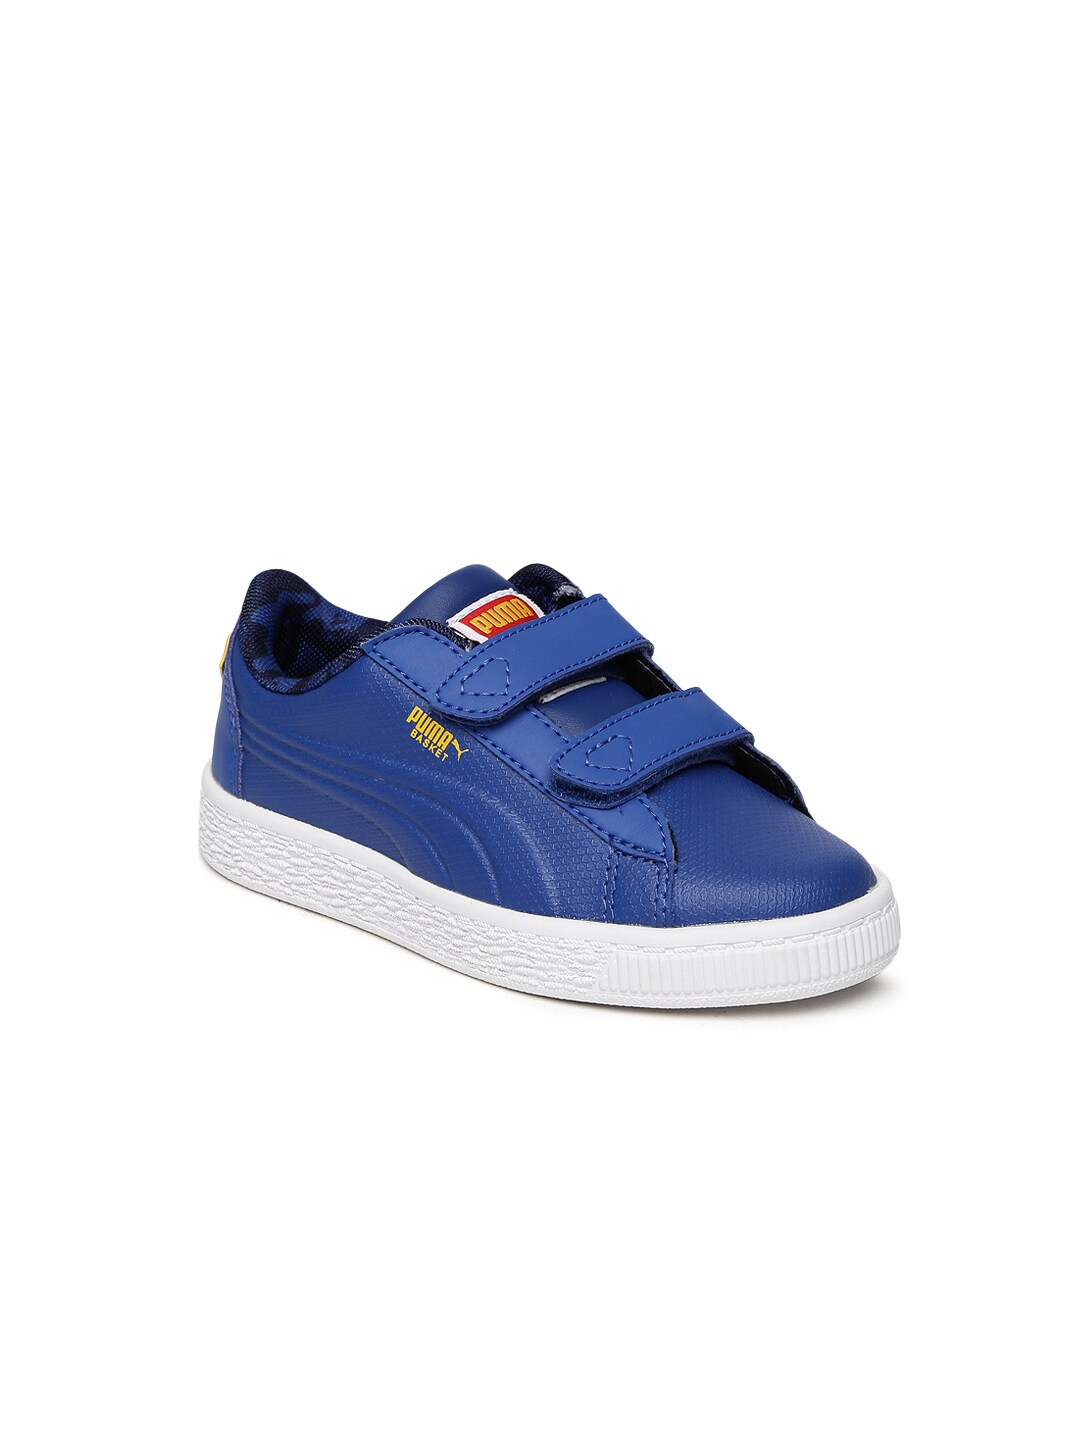 info for ab539 80fd5 Buy Puma Kids Blue JL Carson 2 Sneakers - Casual Shoes for Unisex ...